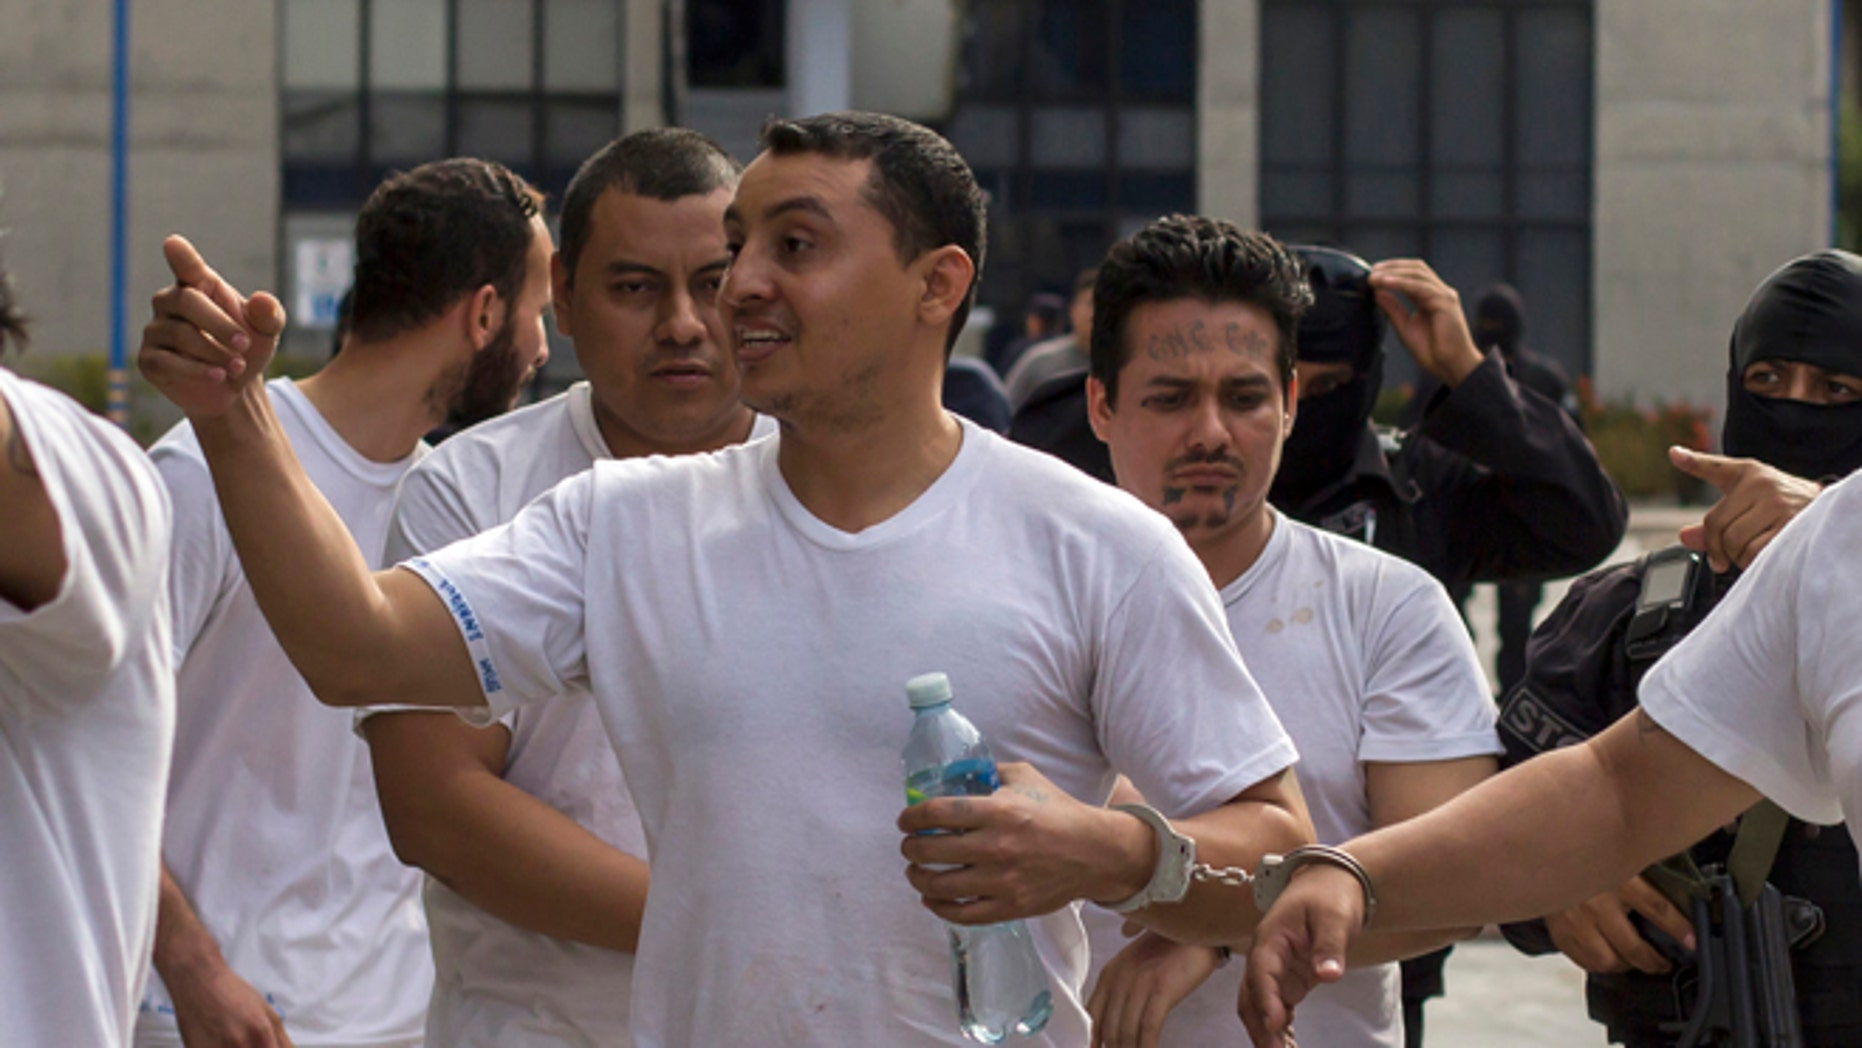 In this Tuesday, Aug. 2, 2016 photo, handcuffed to another prisoner, Marvin Quintanilla Ramos, center, an evangelical pastor accused by El Salvador Police to be the financier of Mara Salvatrucha gang, is walked out after a court hearing in San Salvador, El Salvador. Prosecutors allege that Ramos used his pastoral credentials to access prisons so he could conspire with jailed leaders of the gang. Religion, they say, was a facade to mask his real work: helping run Mara Salvatruchas street operations and directing its finances at a key moment when gangs are facing a tough crackdown by the government and are moving to diversify their criminal operations and become more corporate in makeup and structure. (AP Photo/Salvador Melendez)